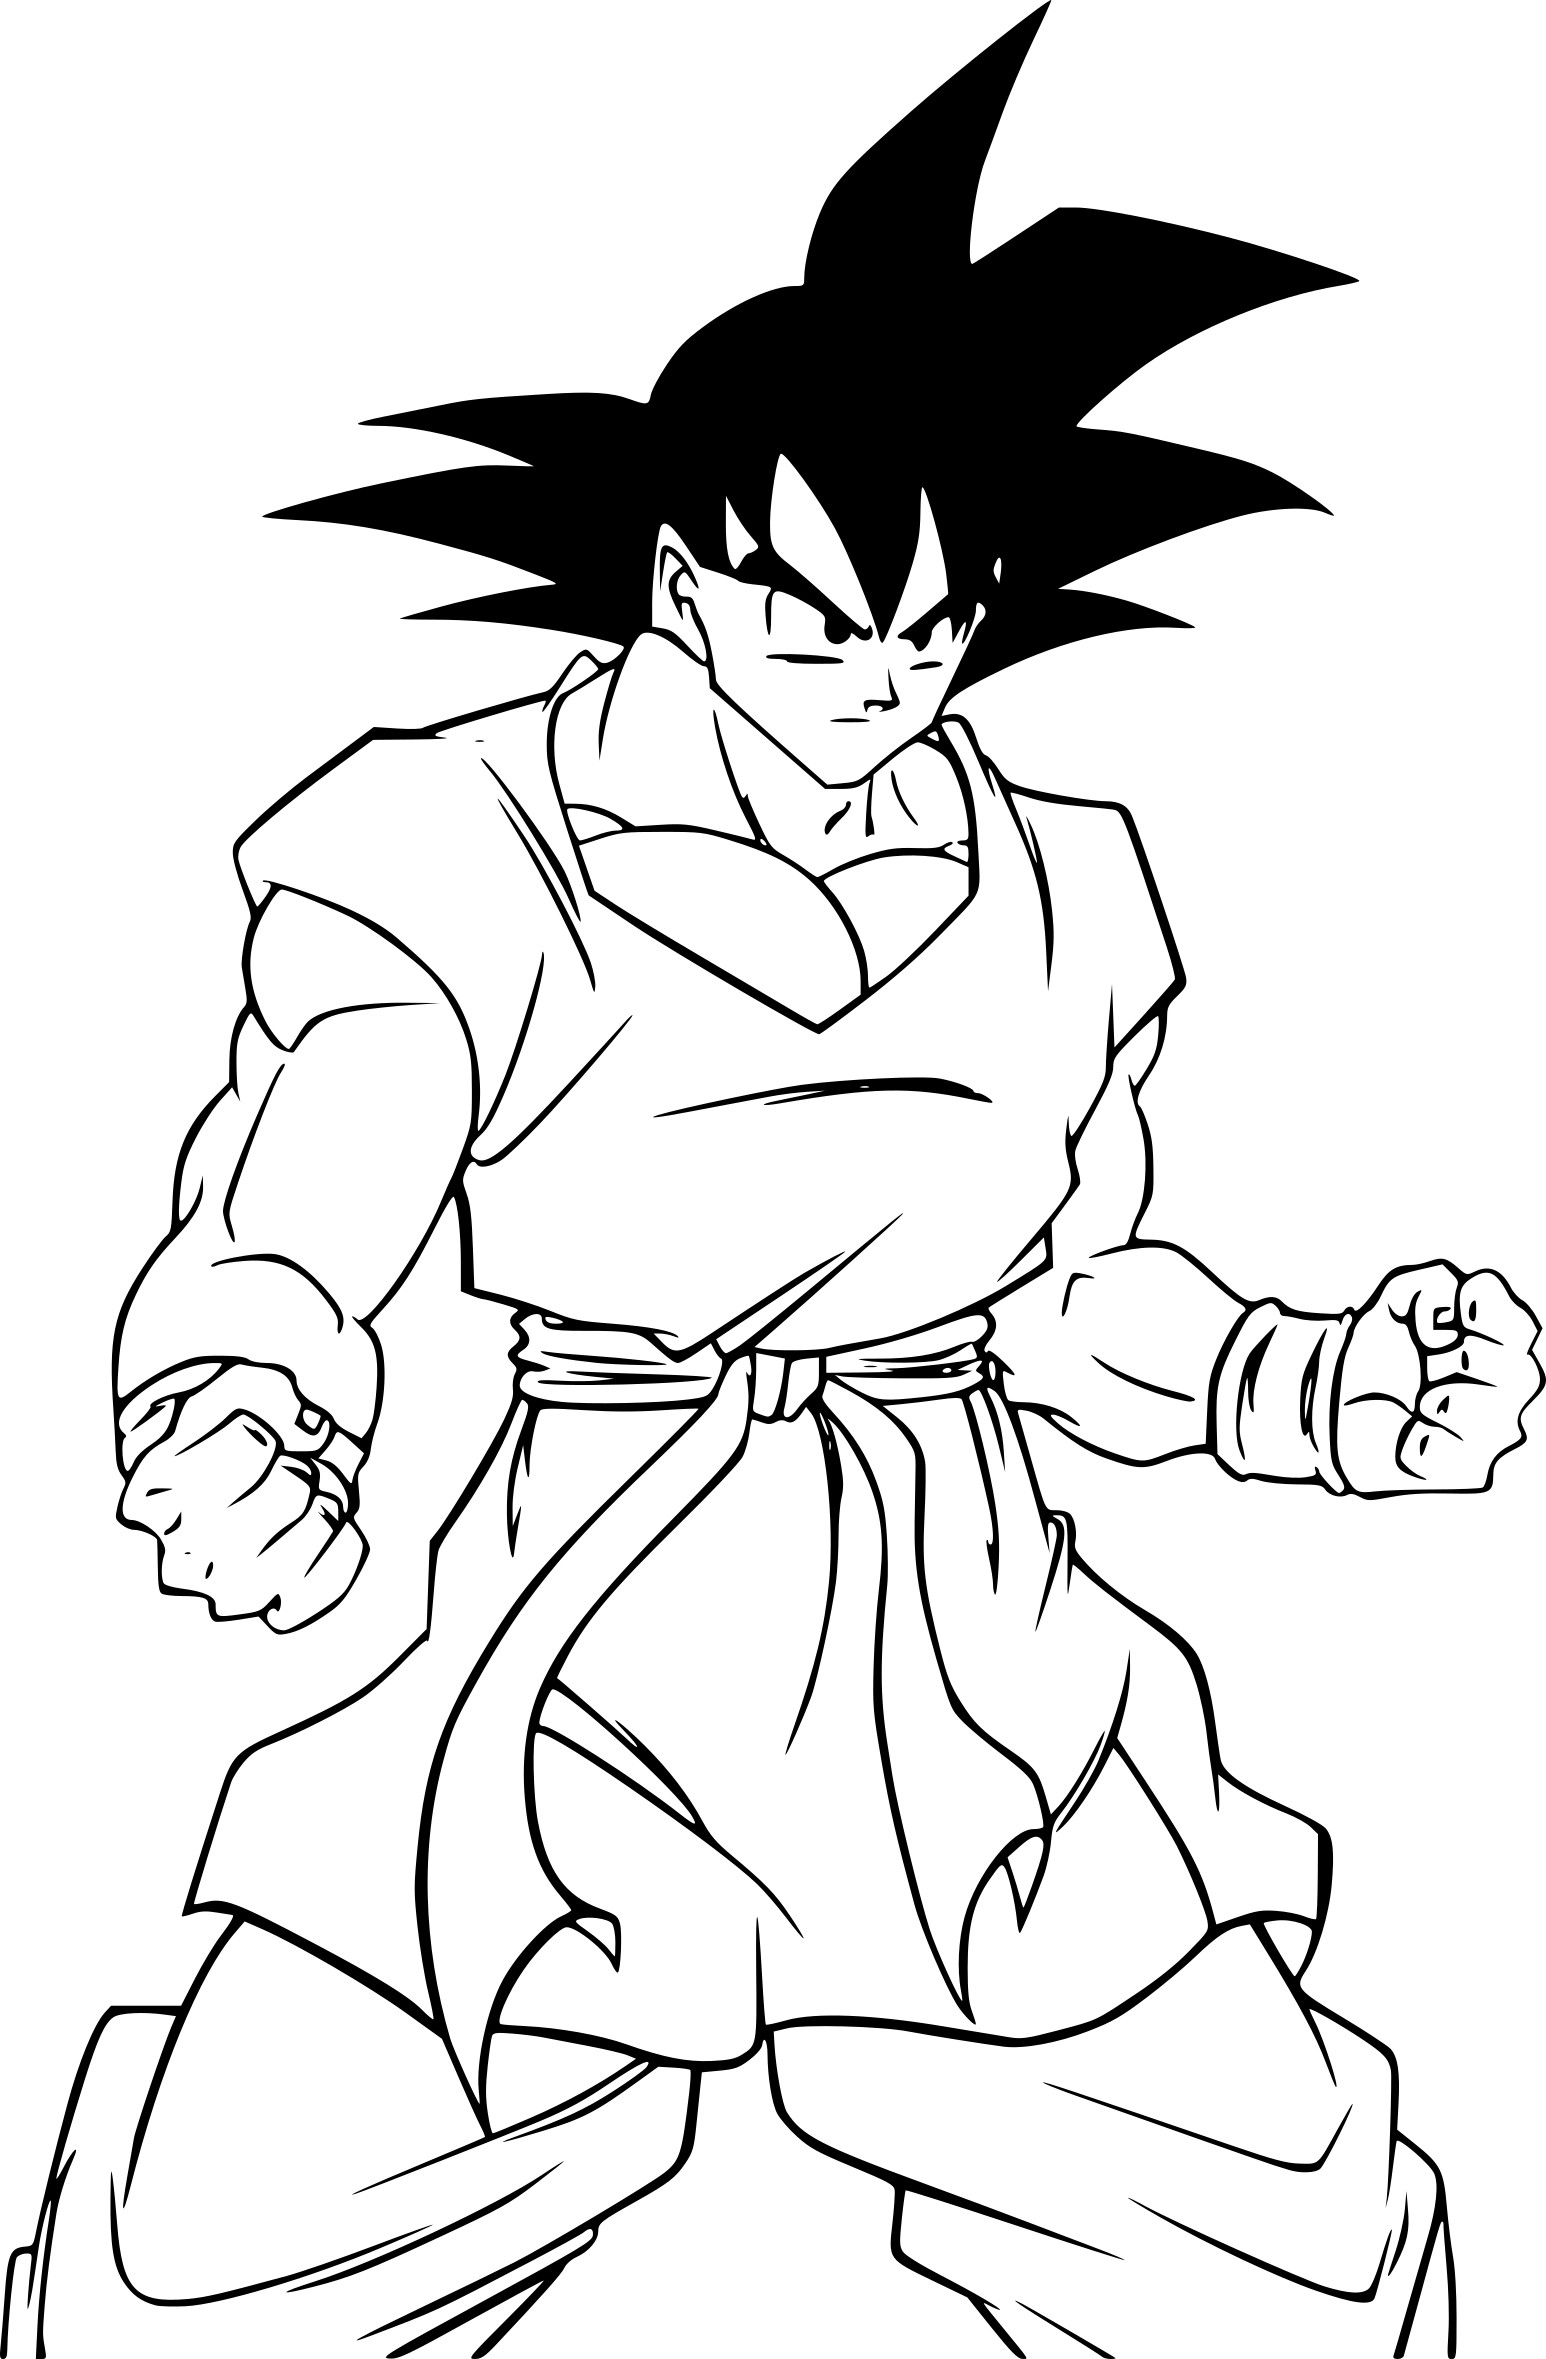 Coloriage son goku dragon ball z imprimer sur coloriages - Dessin dragon couleur ...